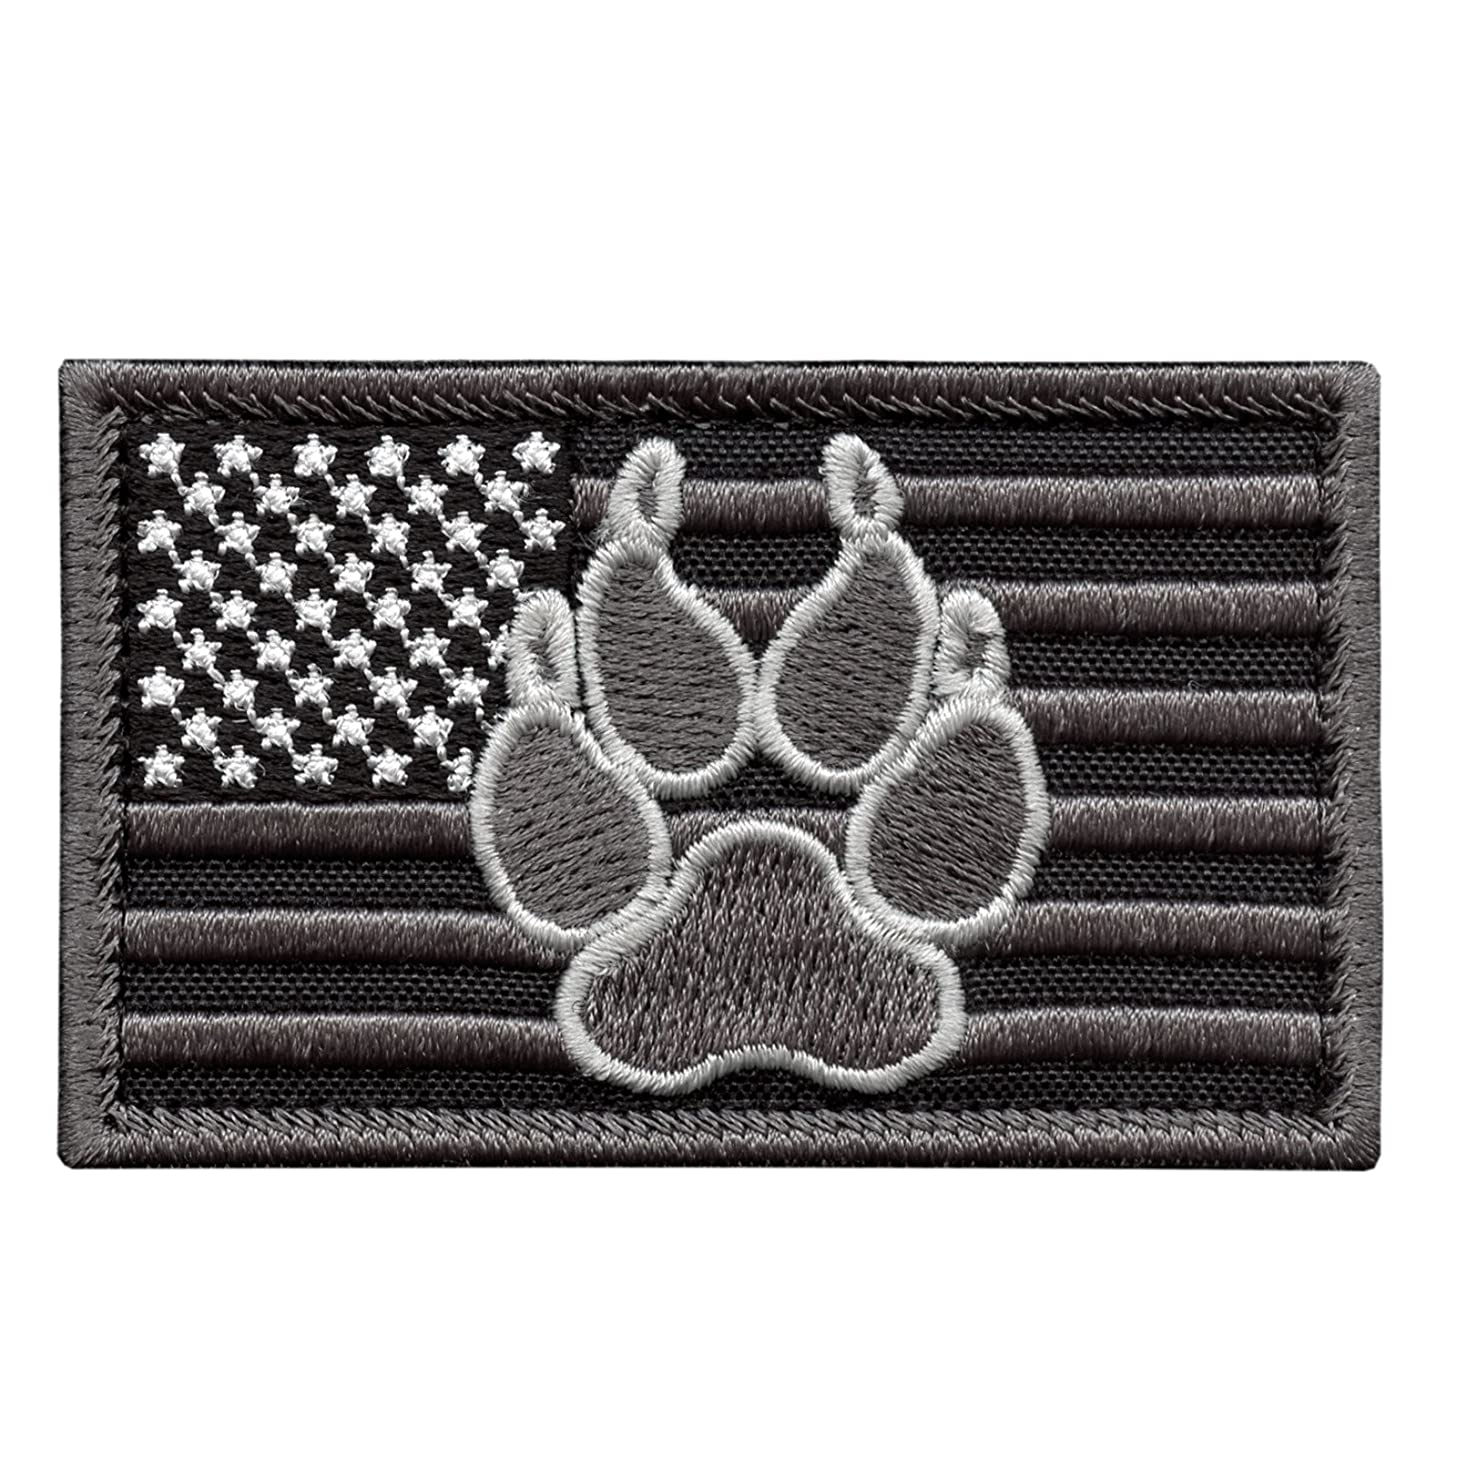 LEGEEON ACU USA American Flag K-9 Dog Handler Subdued Morale Tactical Embroidery Sew Iron on Patch